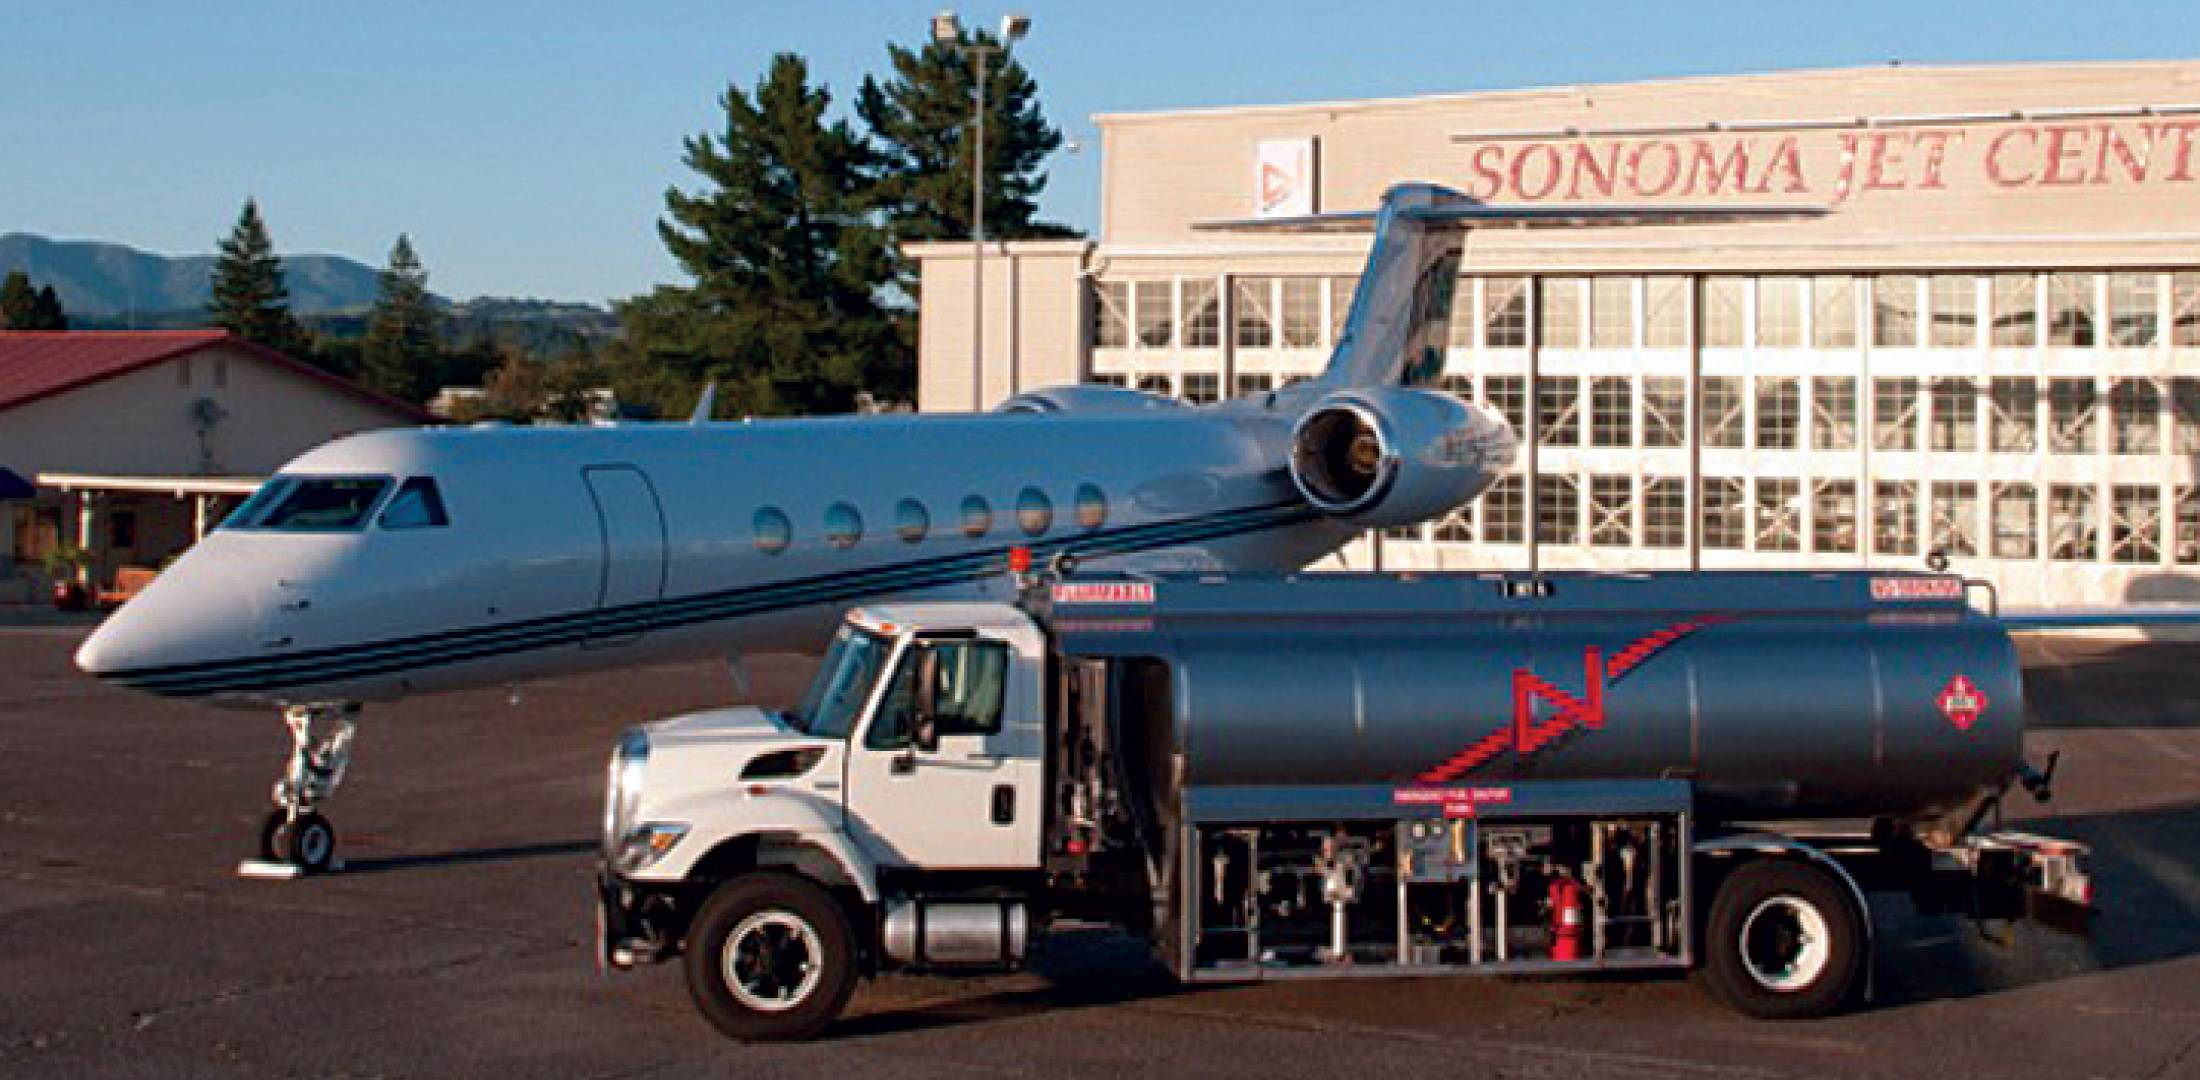 The facility has a pair of new 5,000-gallon jet-A tankers and two 750-gallon avgas trucks that distribute fuel from the tank farm.